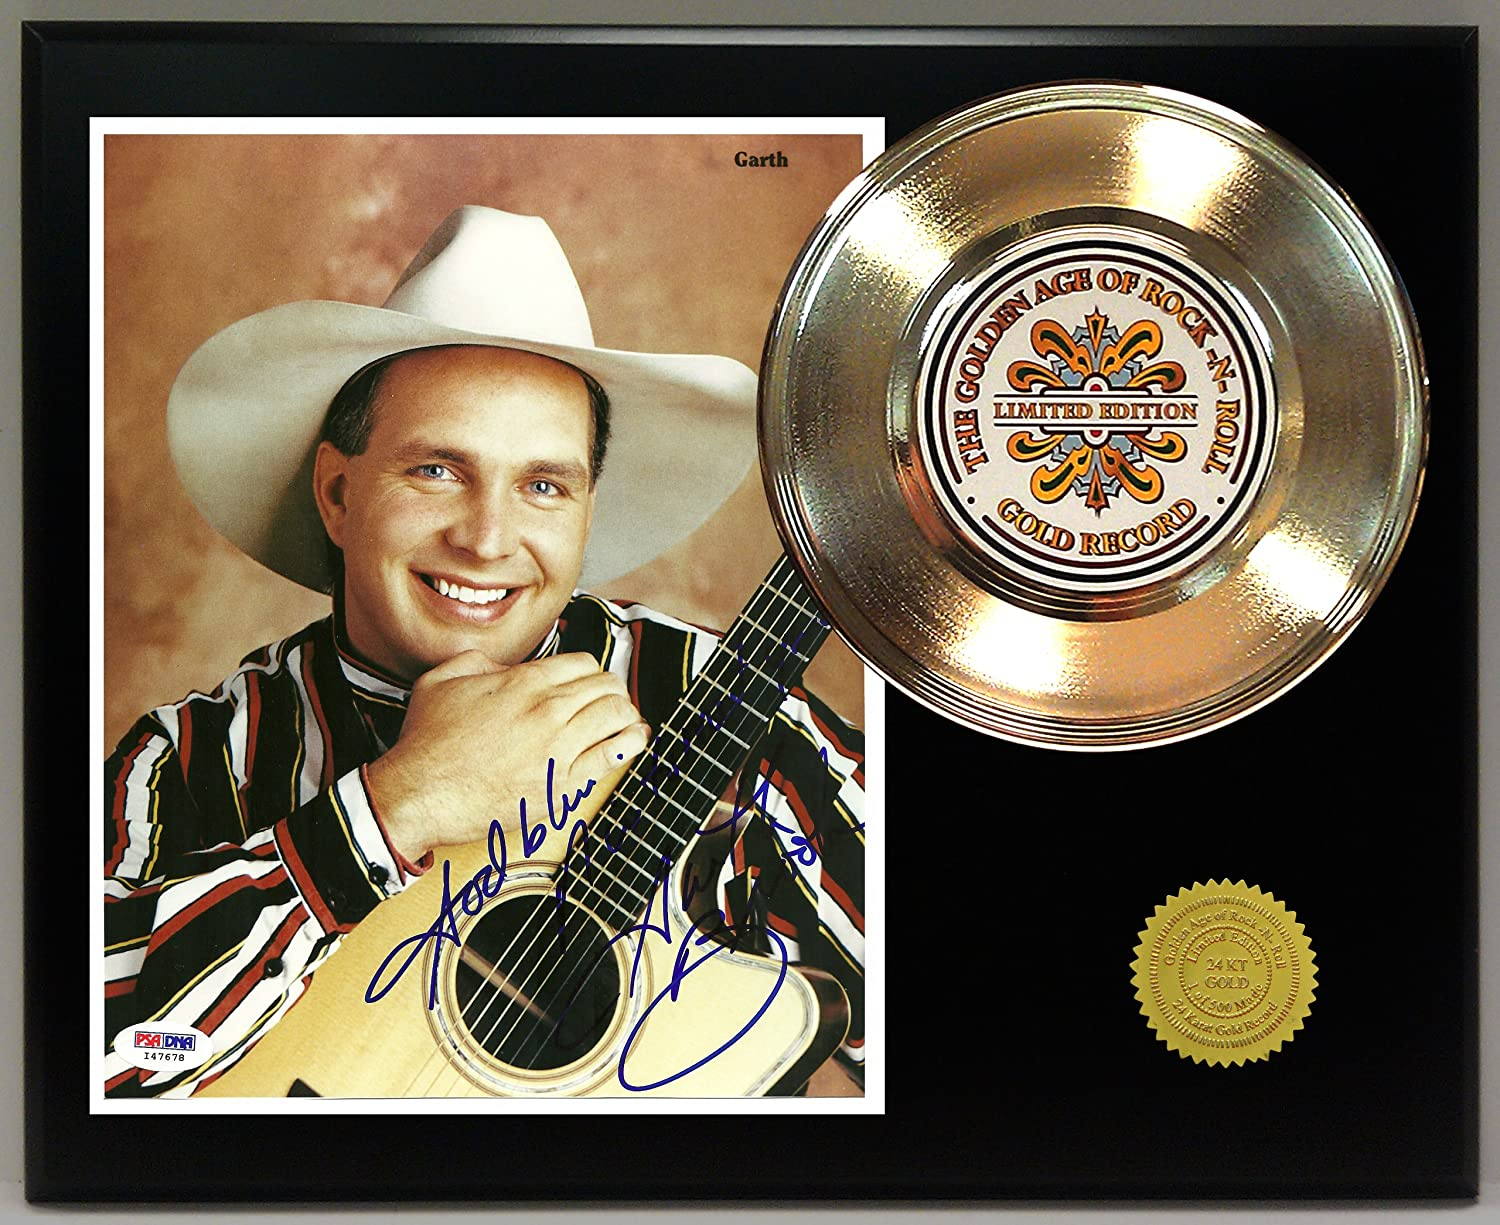 Garth Brooks Gold Record Signature Series LTD Edition Display Gold Record Outlet